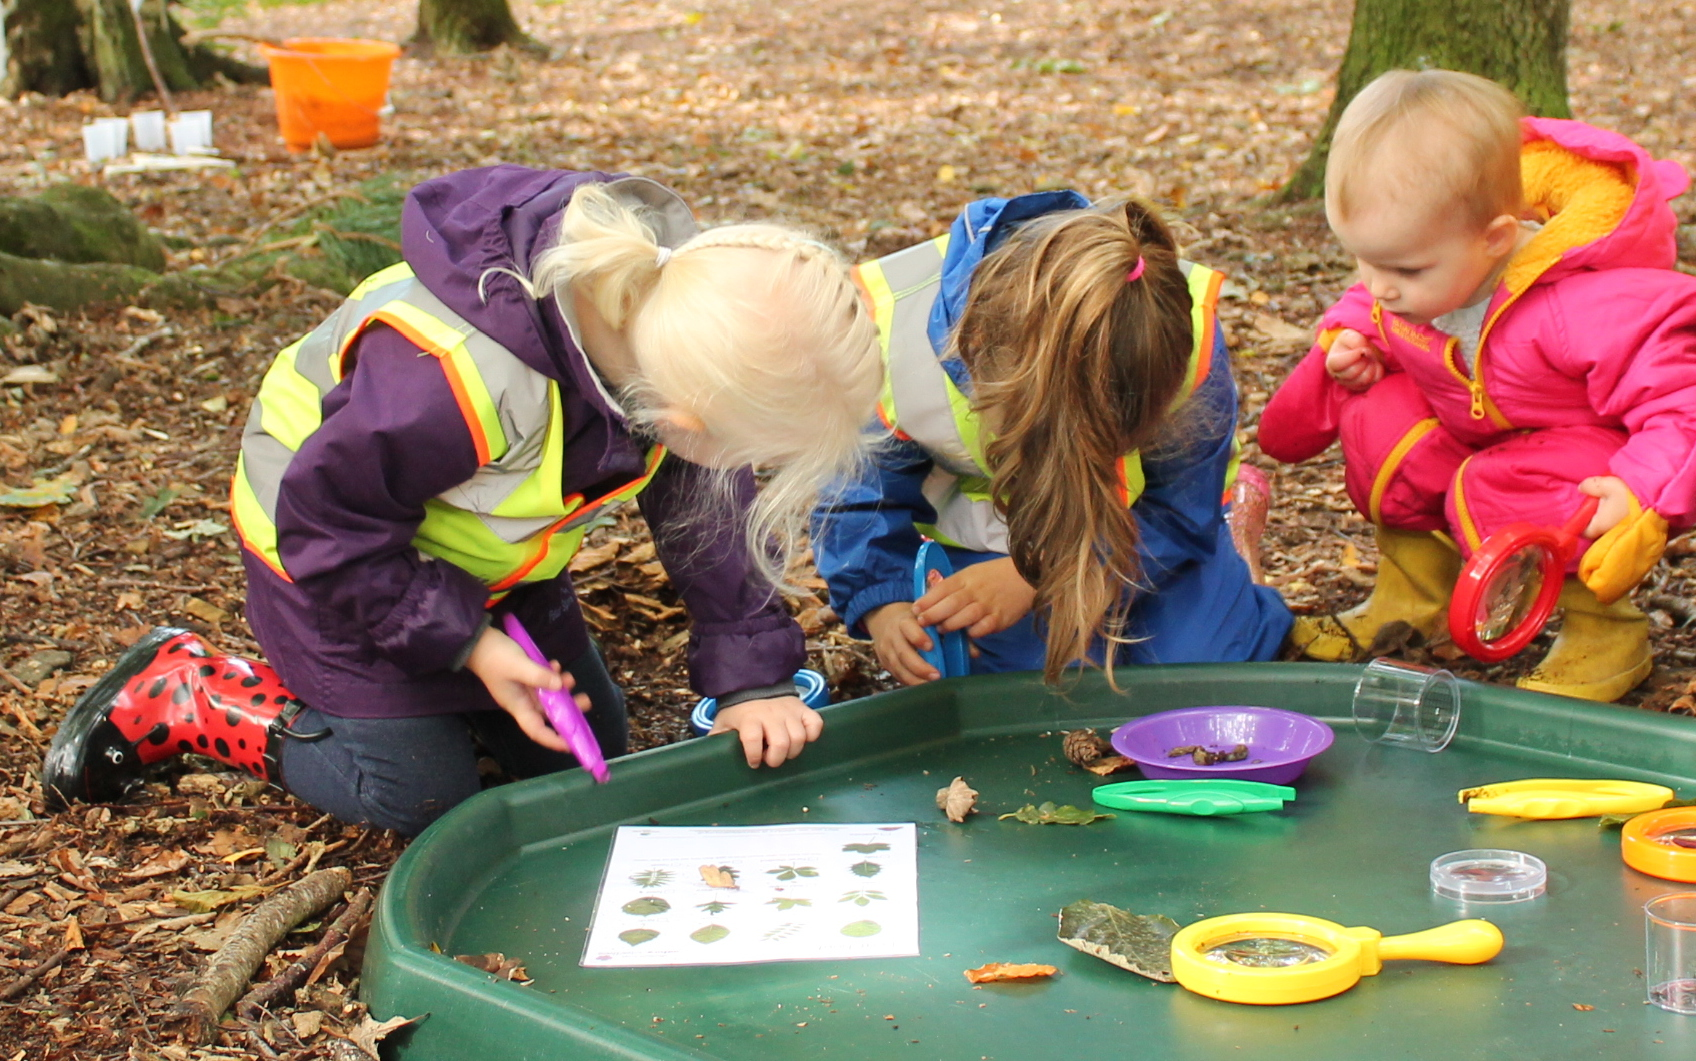 Children Learn Through Nature